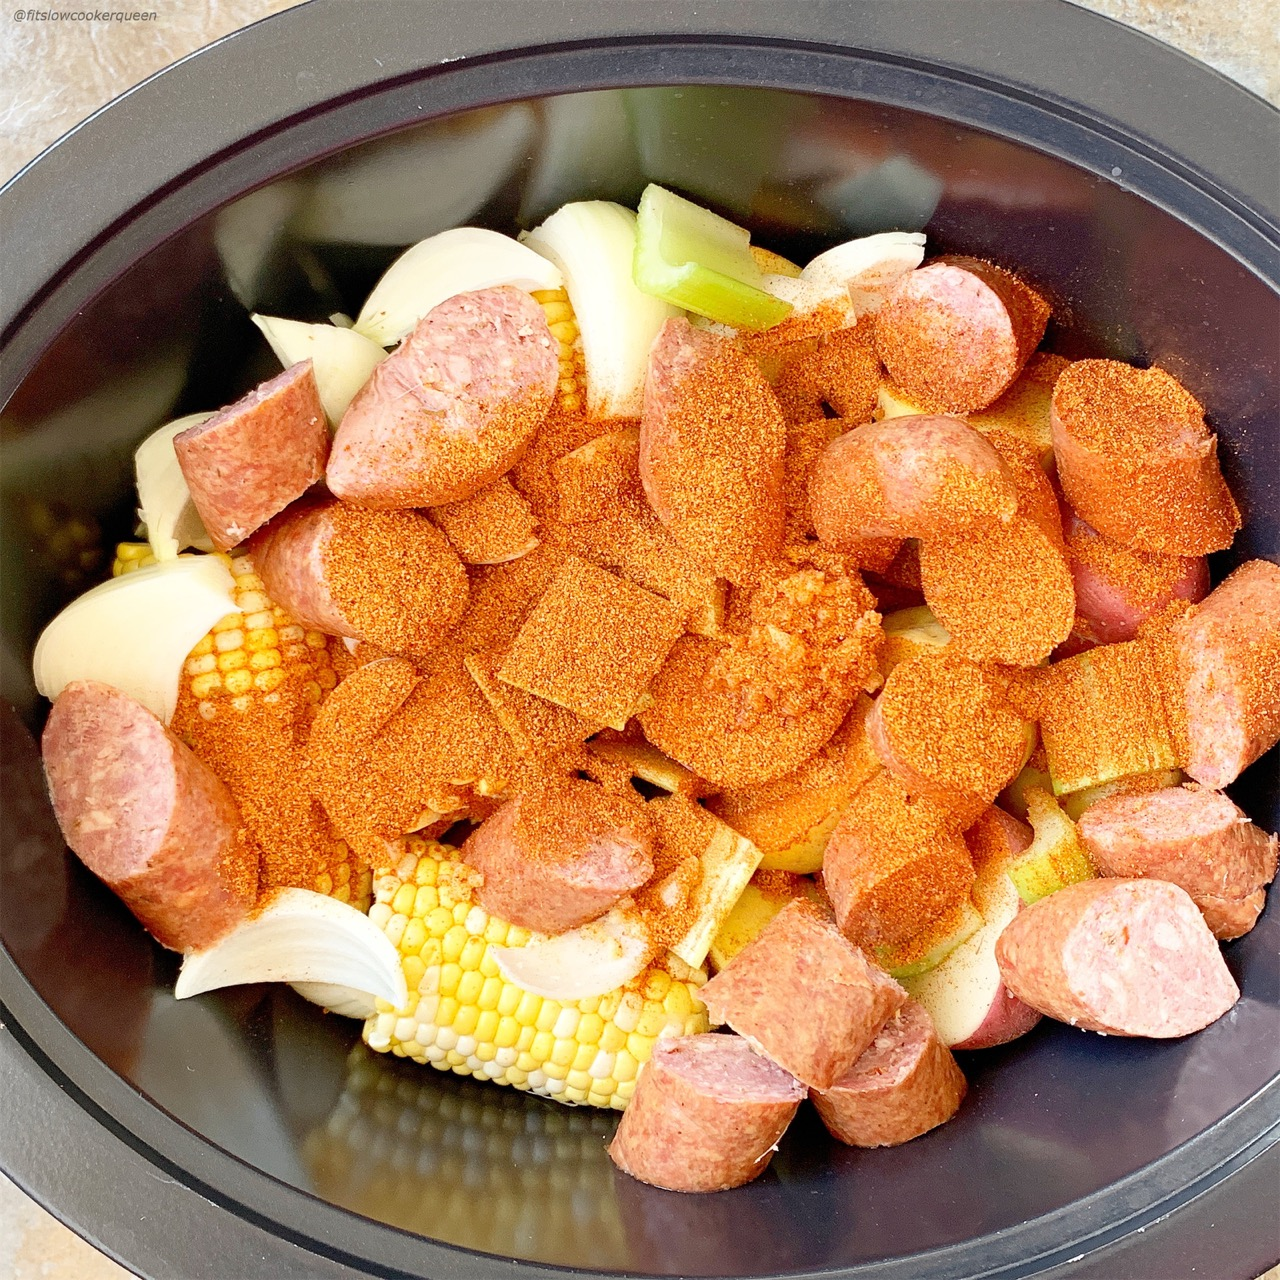 Cajun seasoning spices up this easy slow cooker low country boil. Simple yet packed full of flavor,  you can serve this Cajun dish year-round.